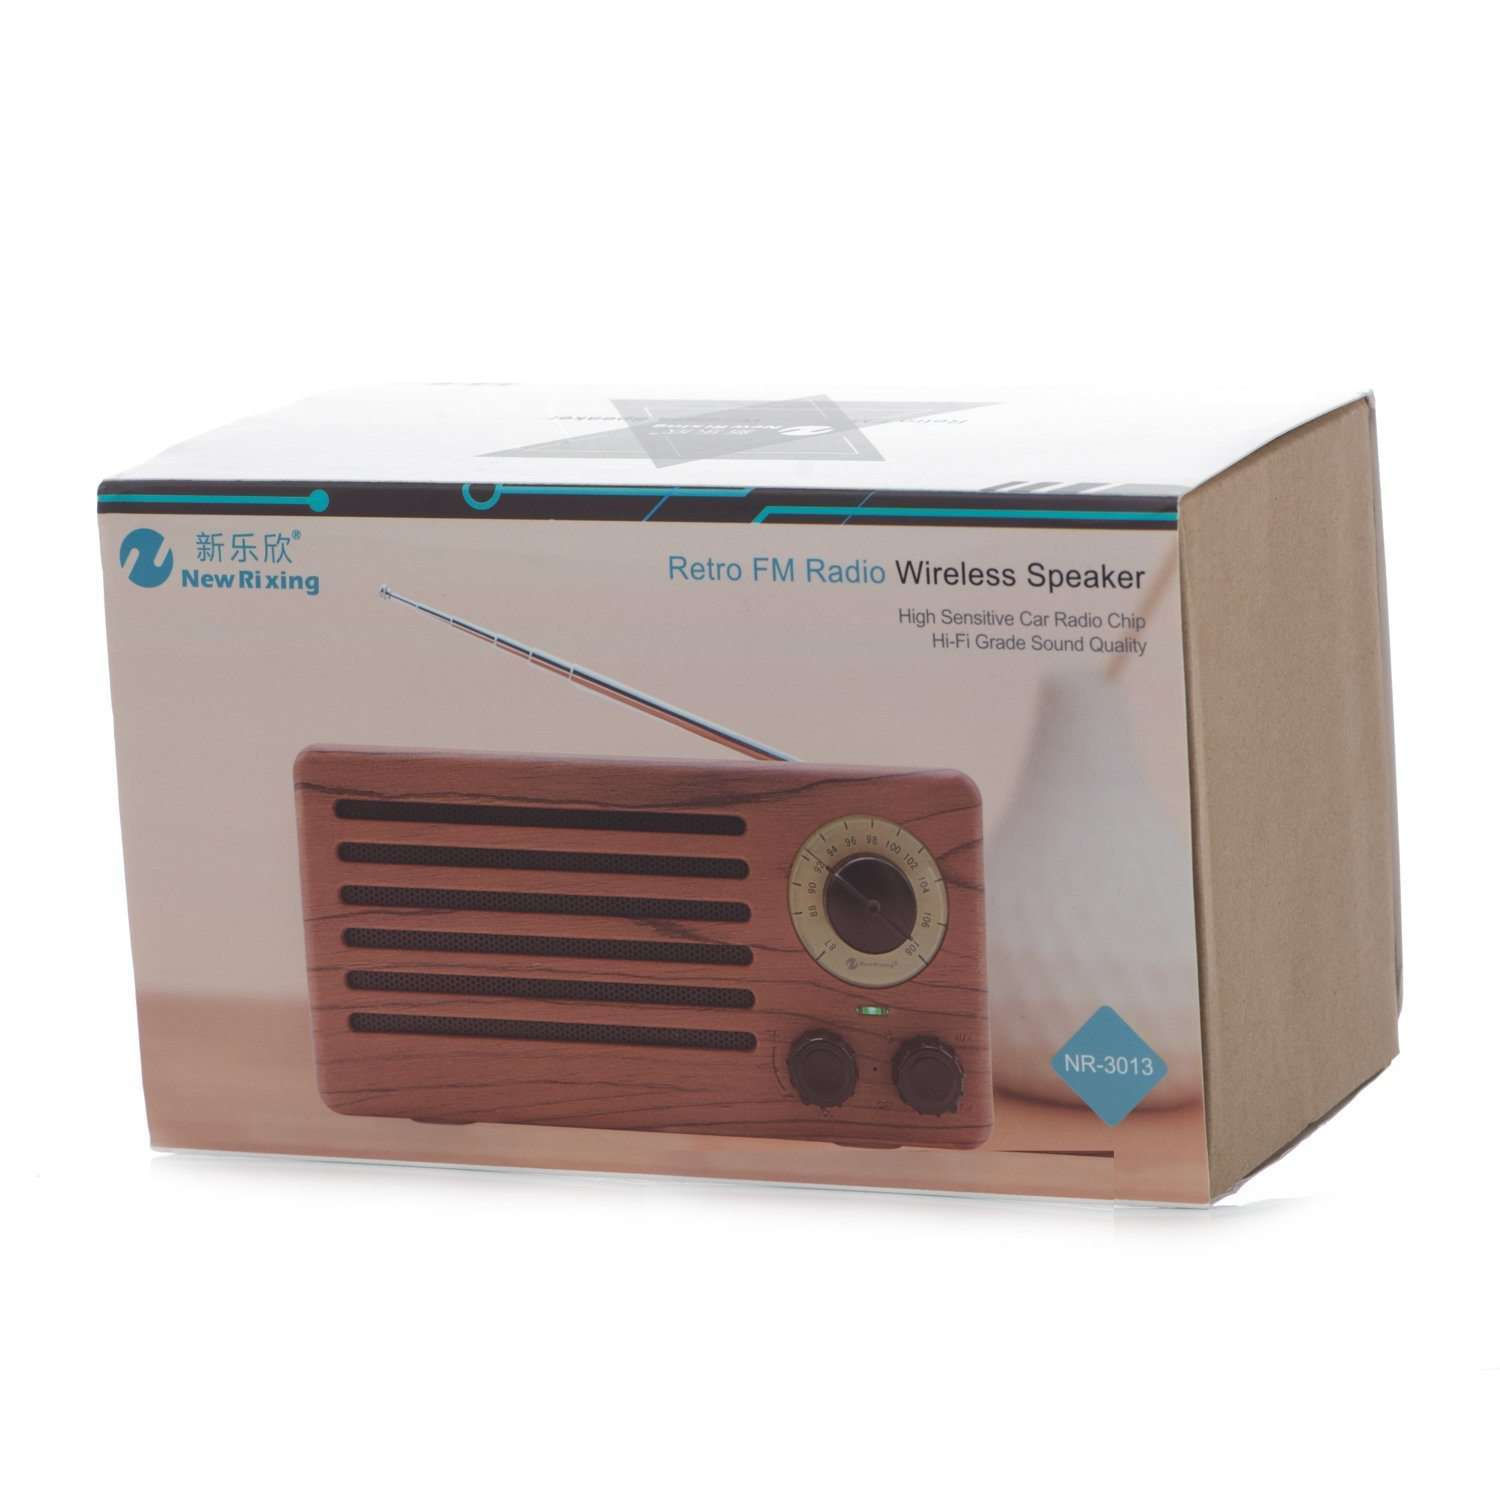 e49611f6f Retro FM Radio Bluetooth Speaker NR-3013